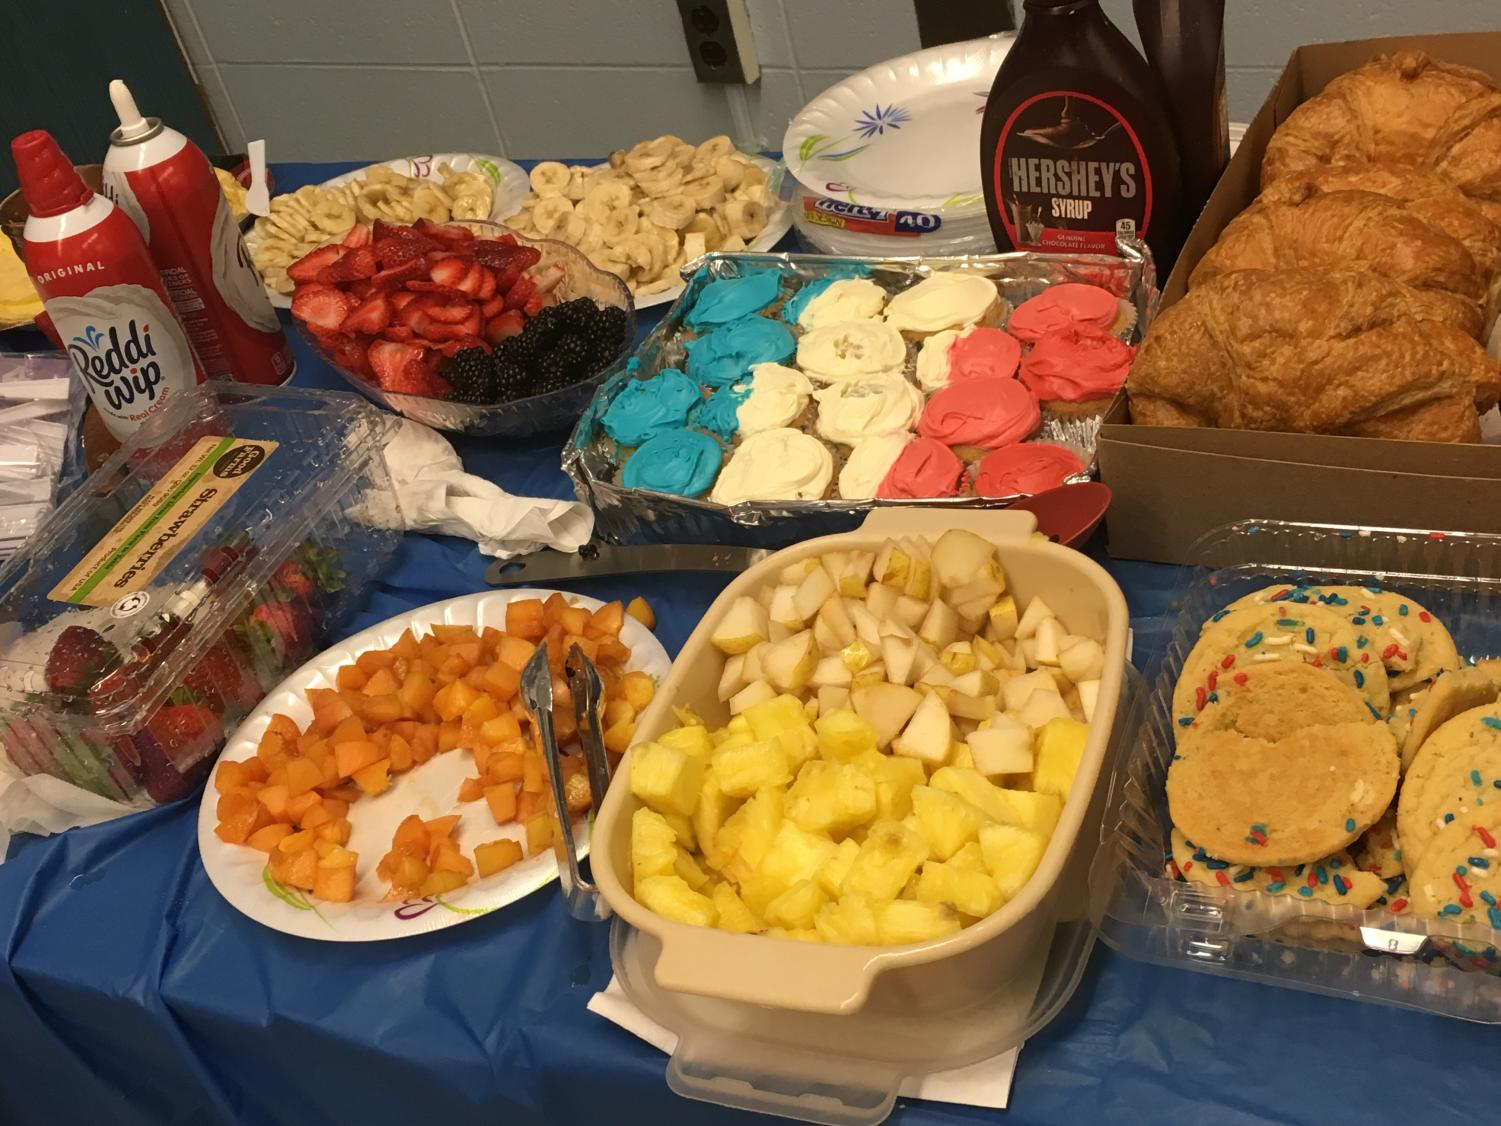 The+selection+of+food+for+the+celebration